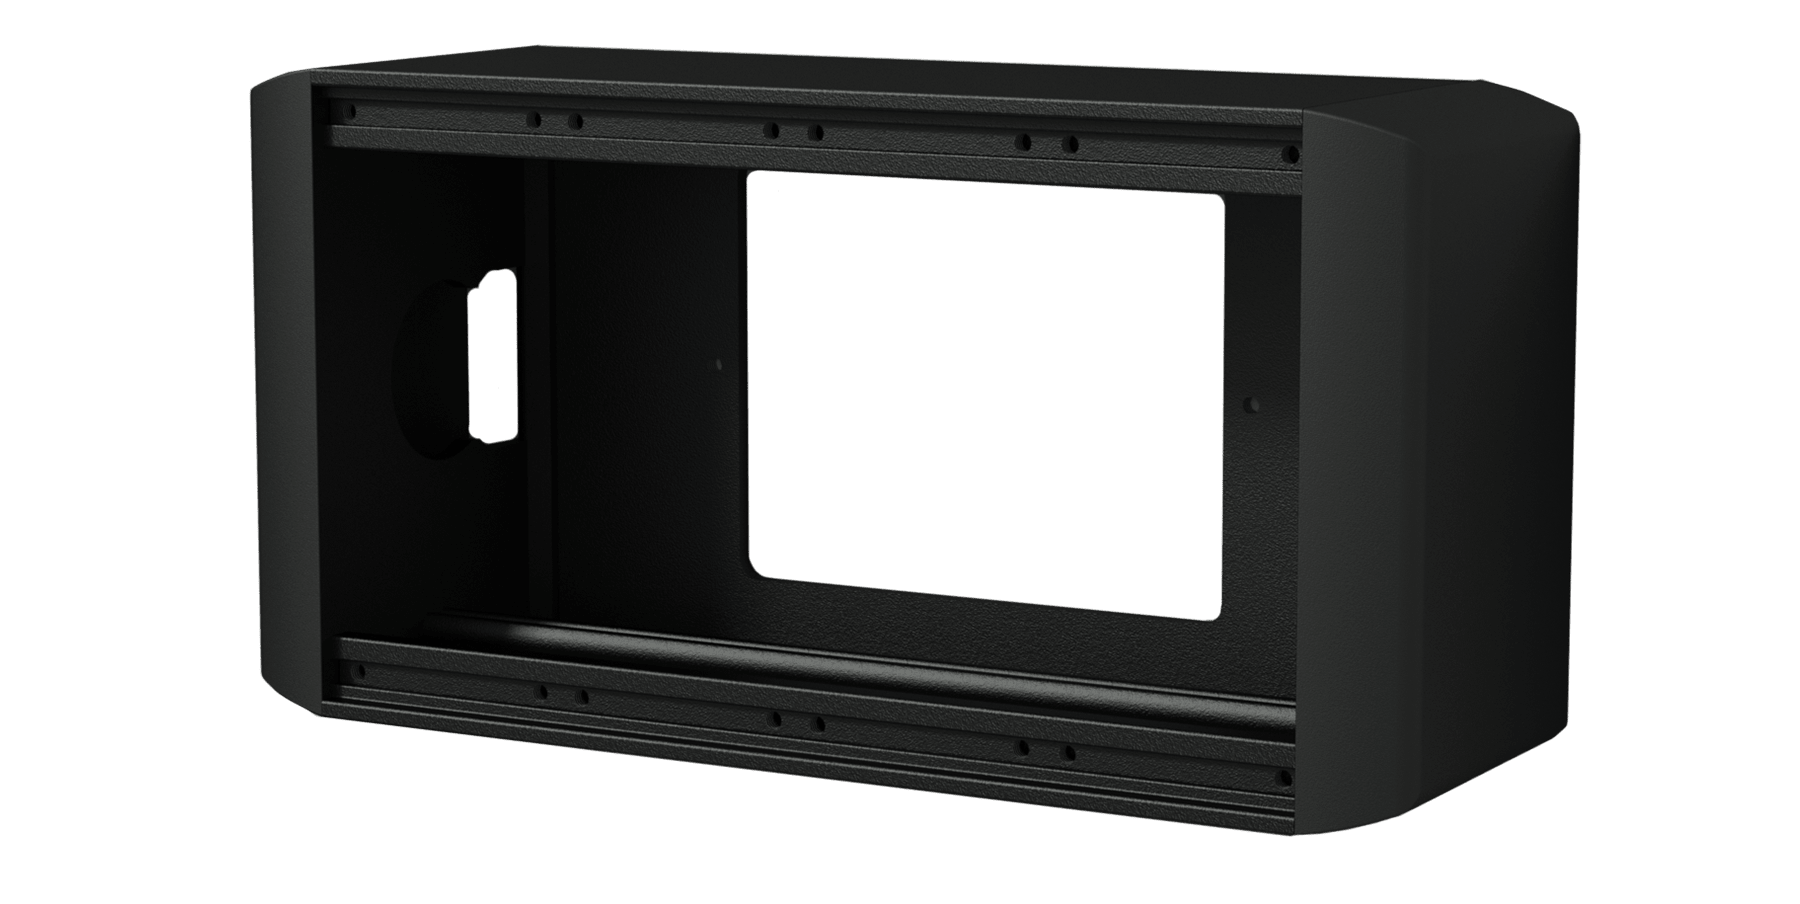 CASY034 - CASY on-wall chassis - 4 space